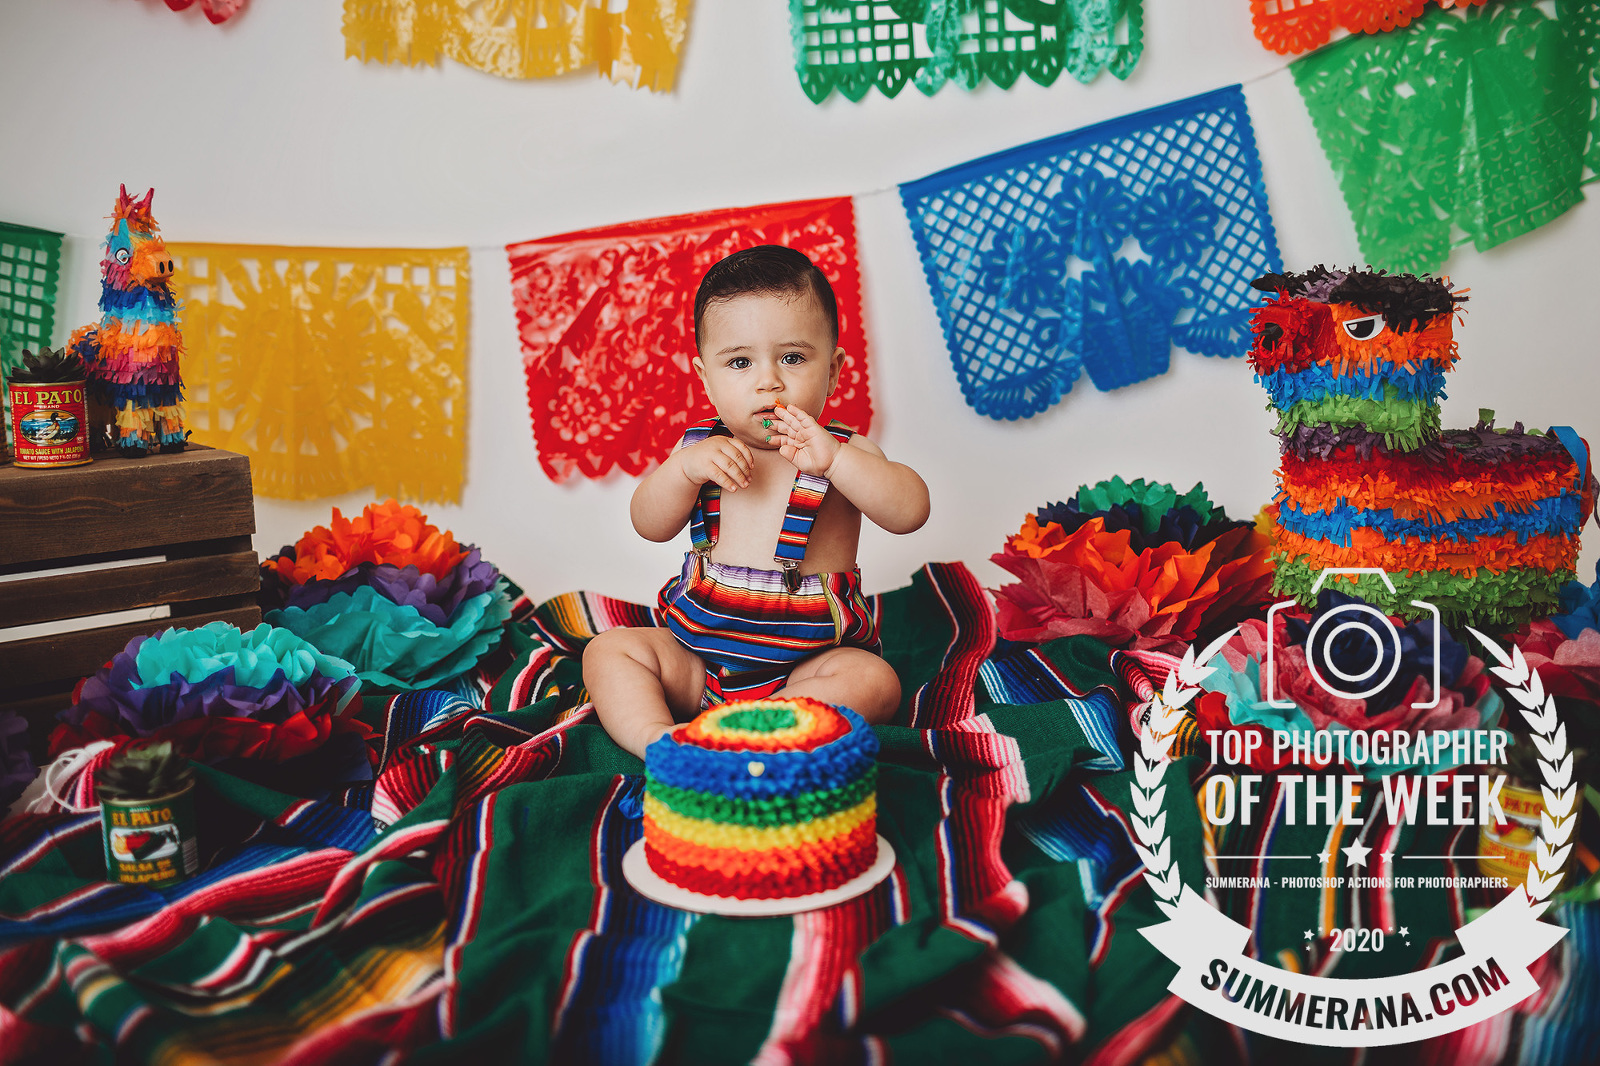 Top ten photographer award for a Mexican-themed cake smash photo session